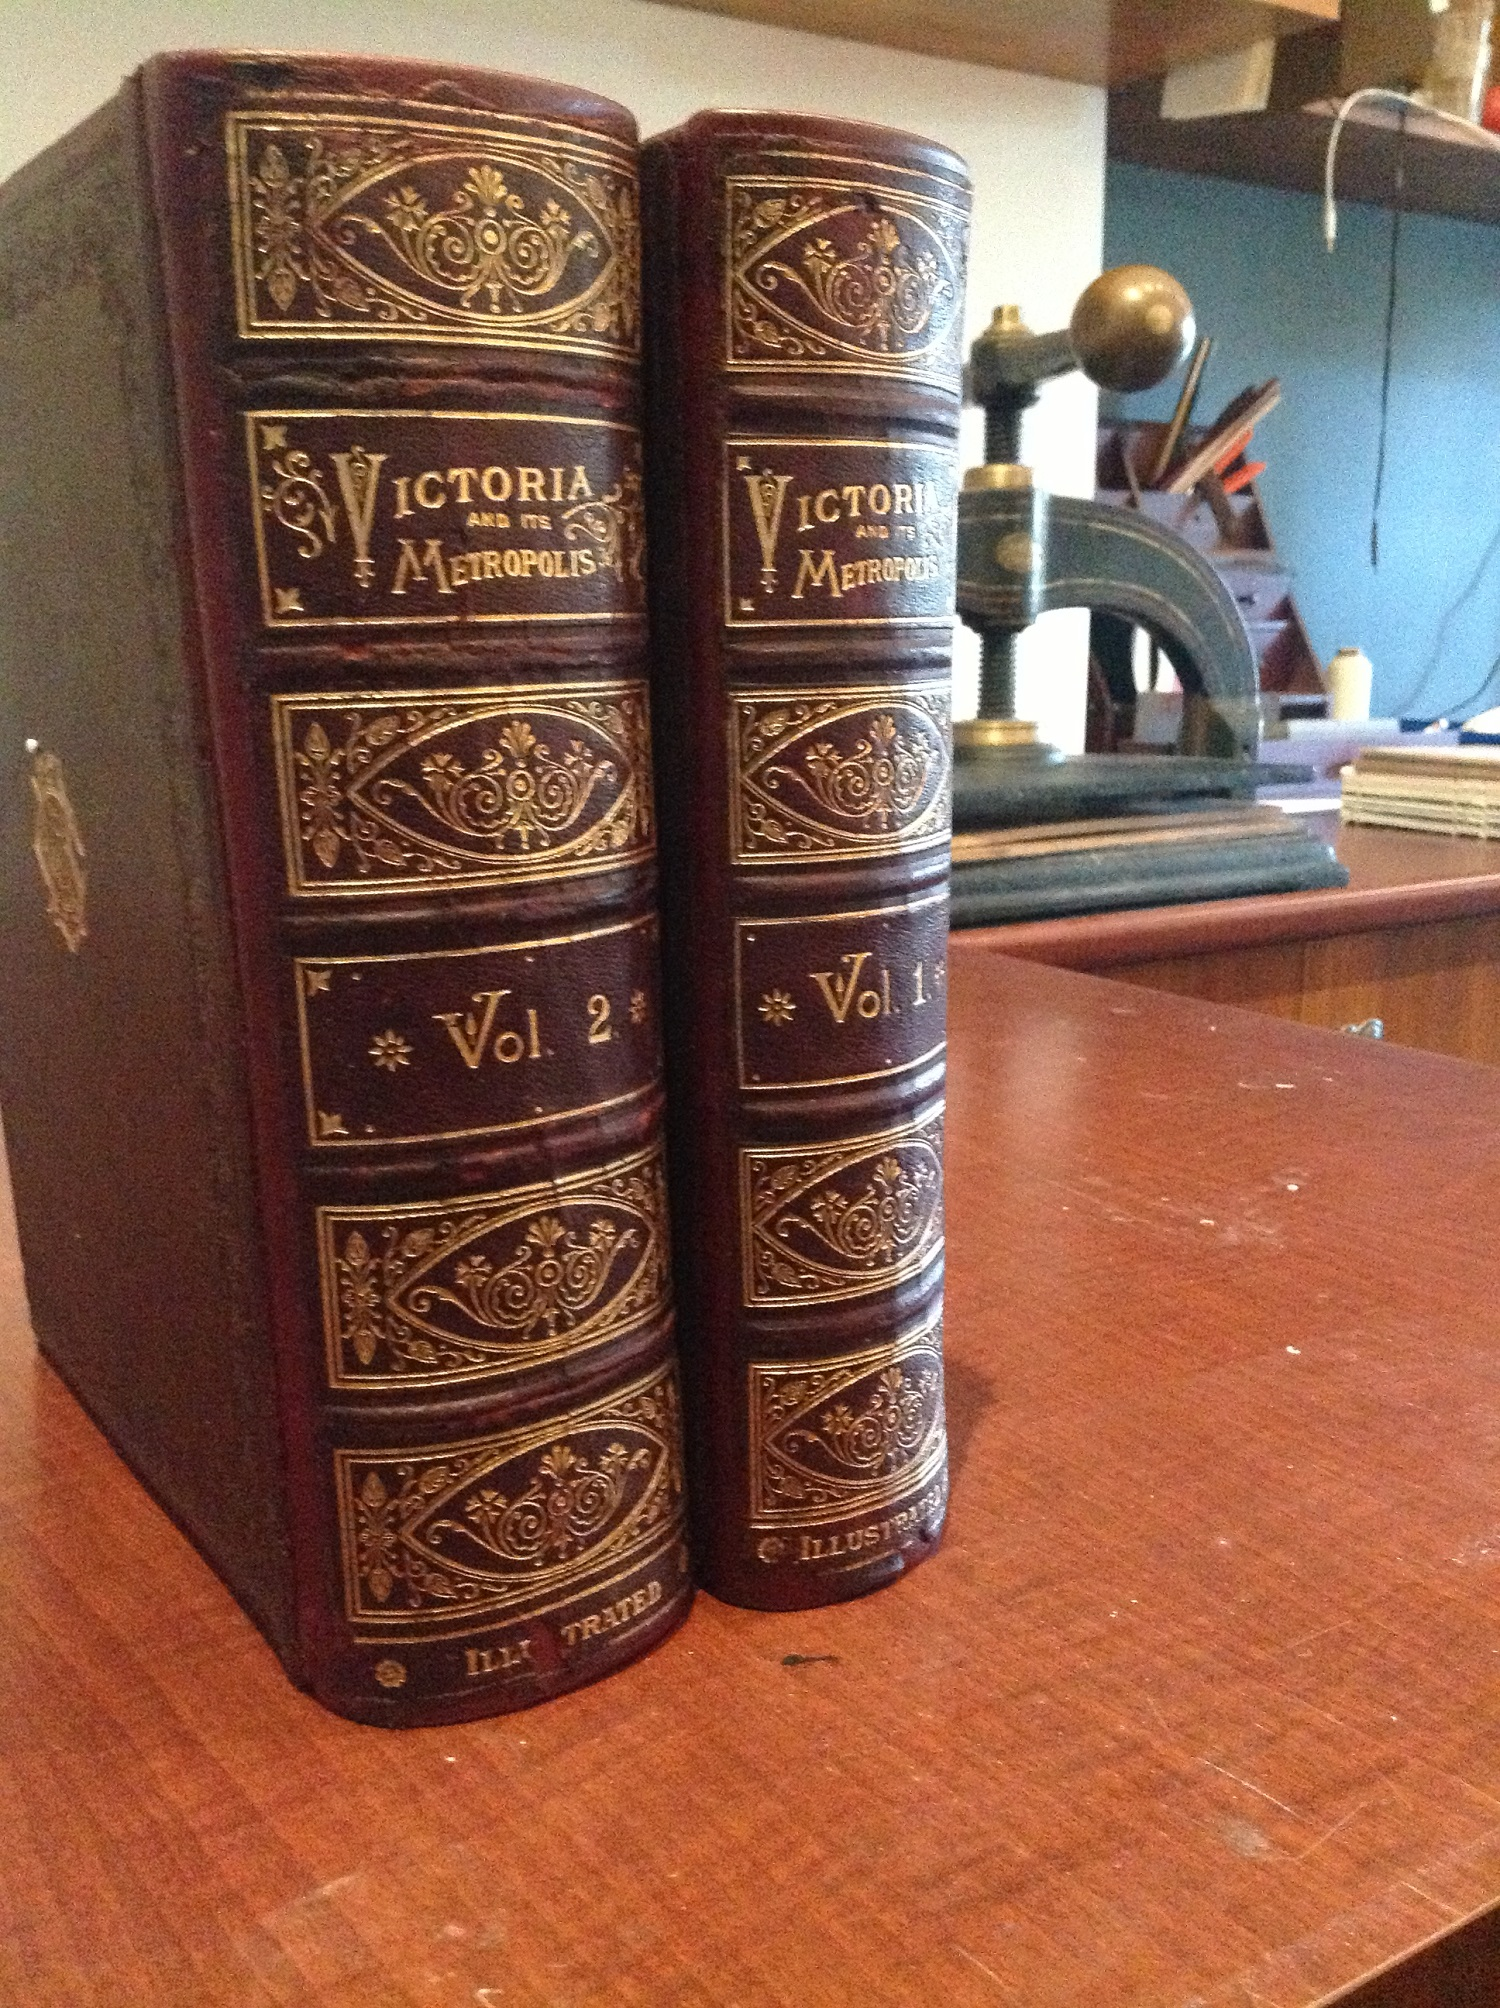 Restored Victoria and its Metropolis in Two Volumes